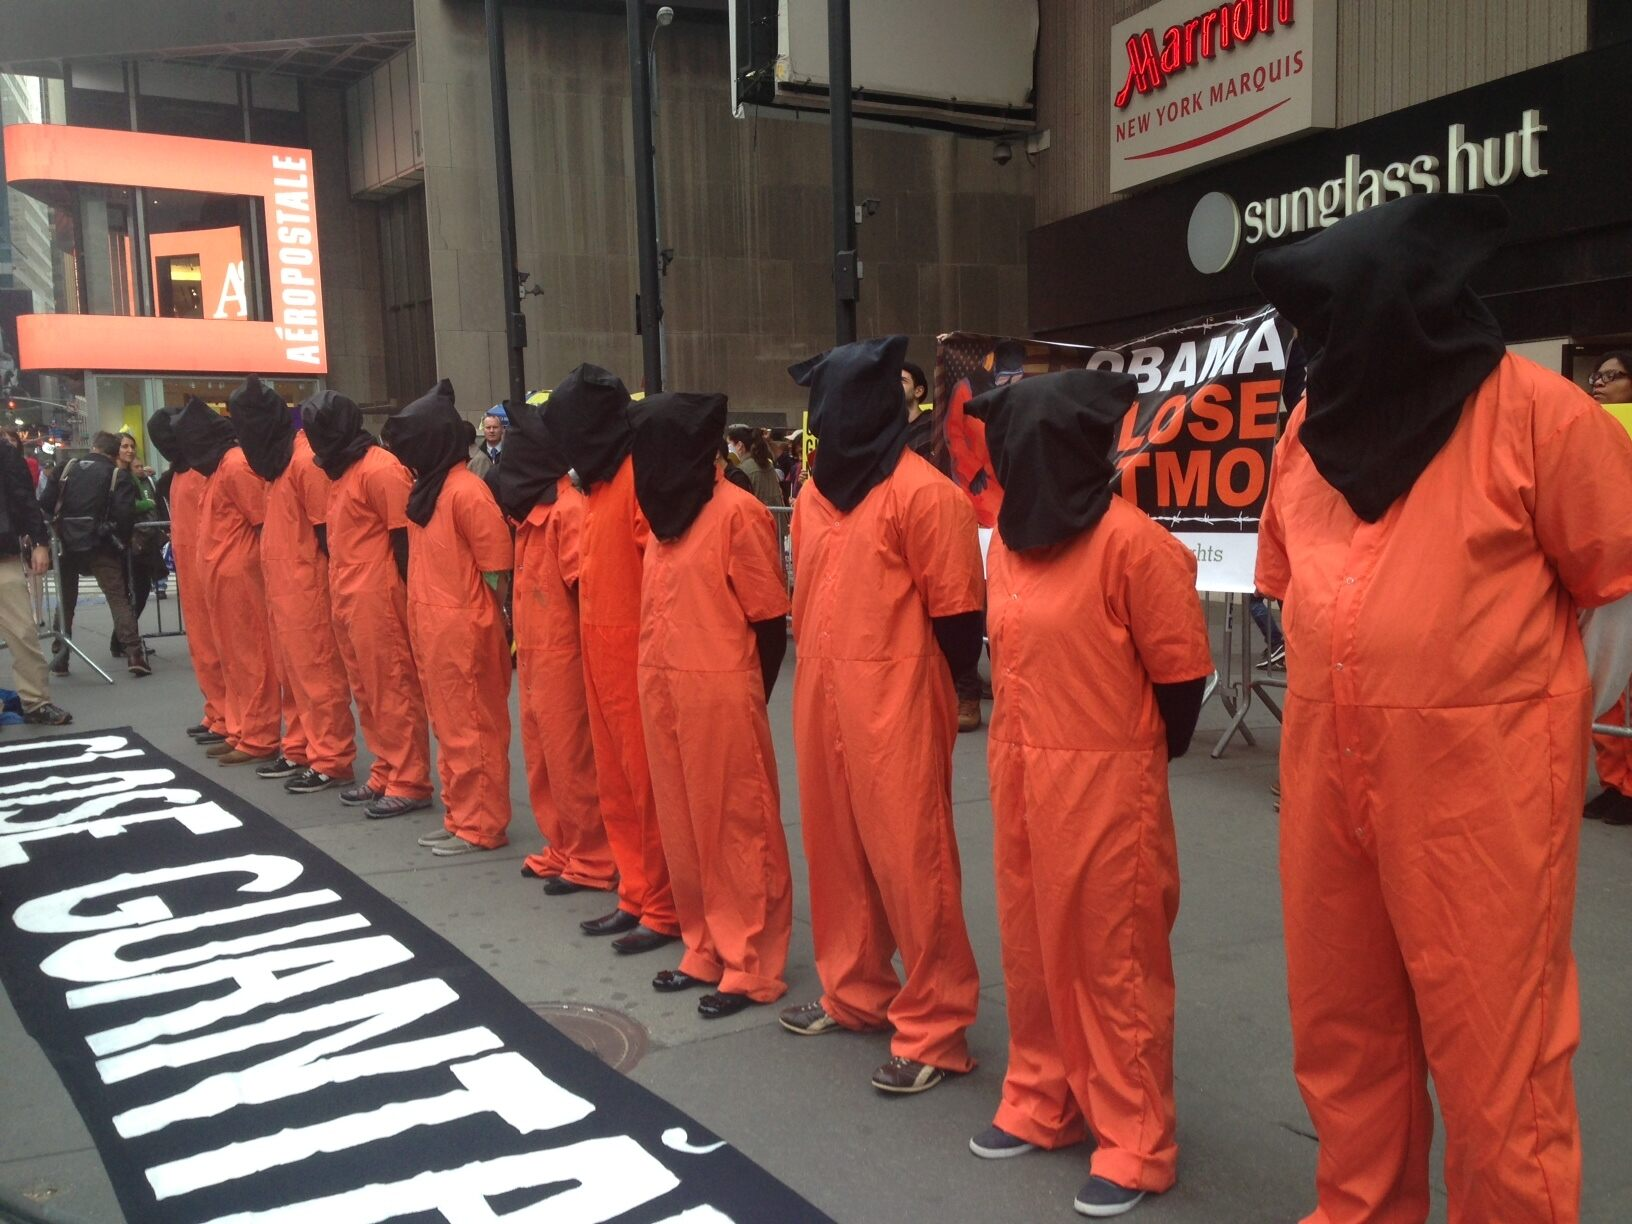 Guantanamo Protests